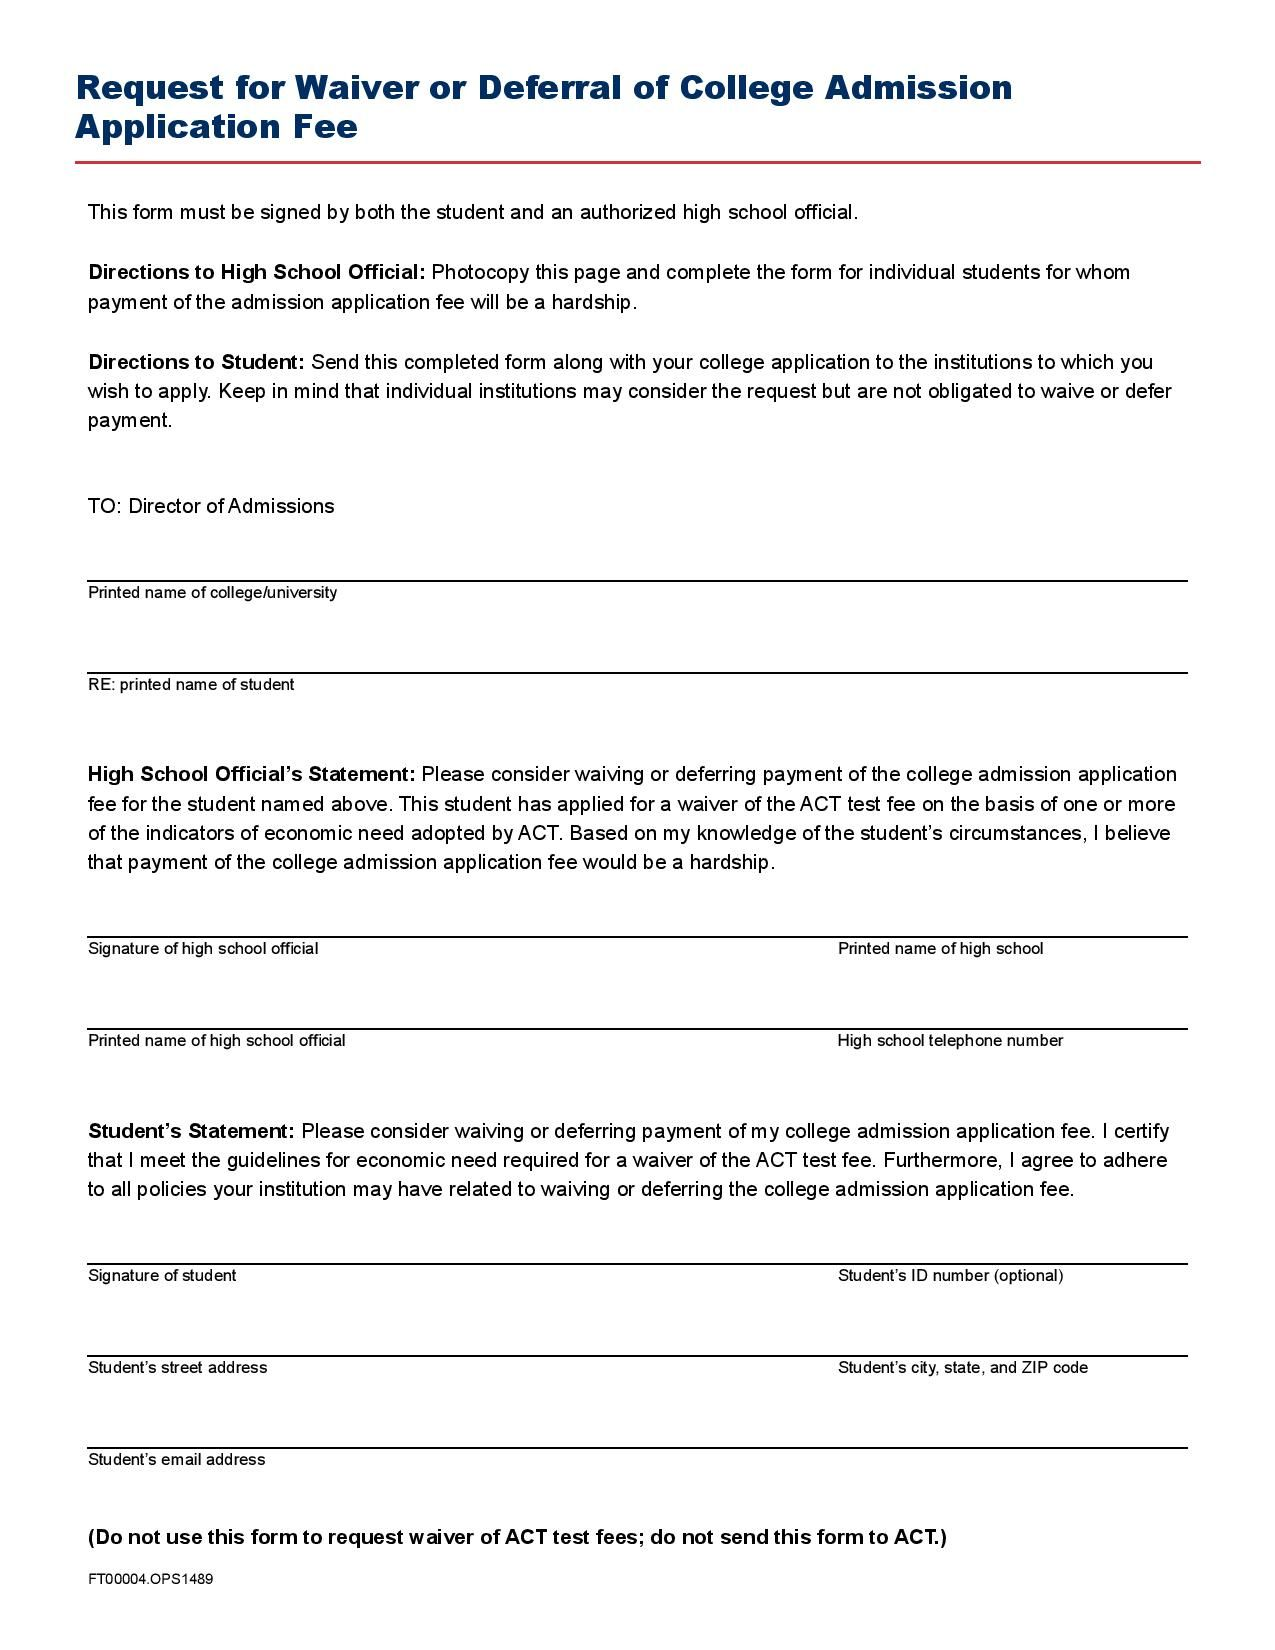 Request For Waiver Or Deferral Of College Admission Application